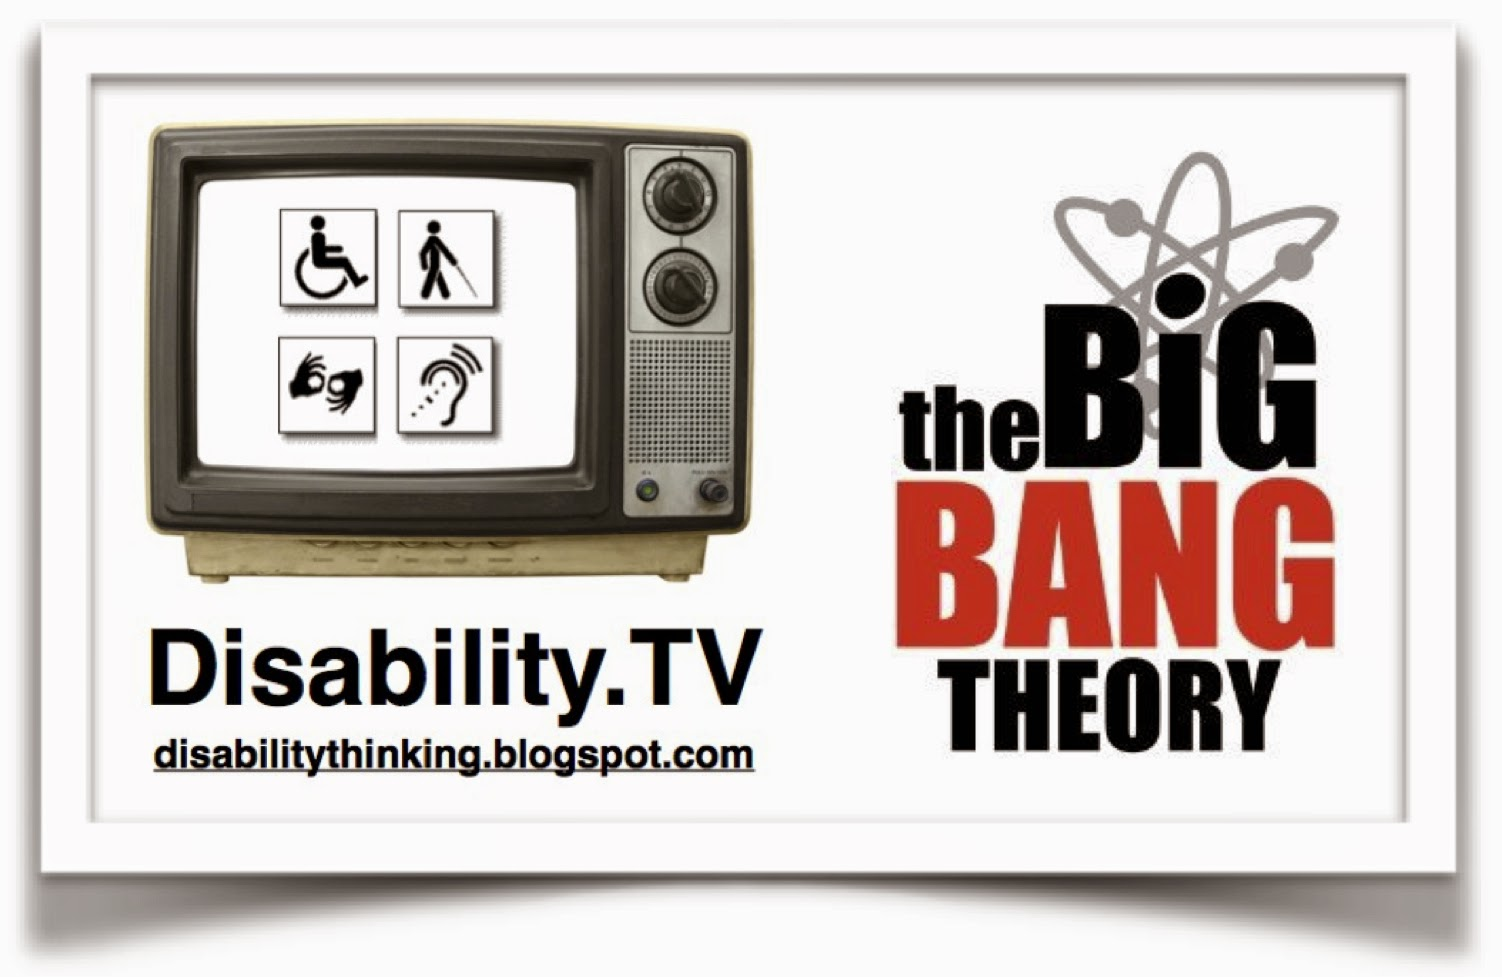 Disability.TV logo on the left, Big Bang Theory logo on the right.